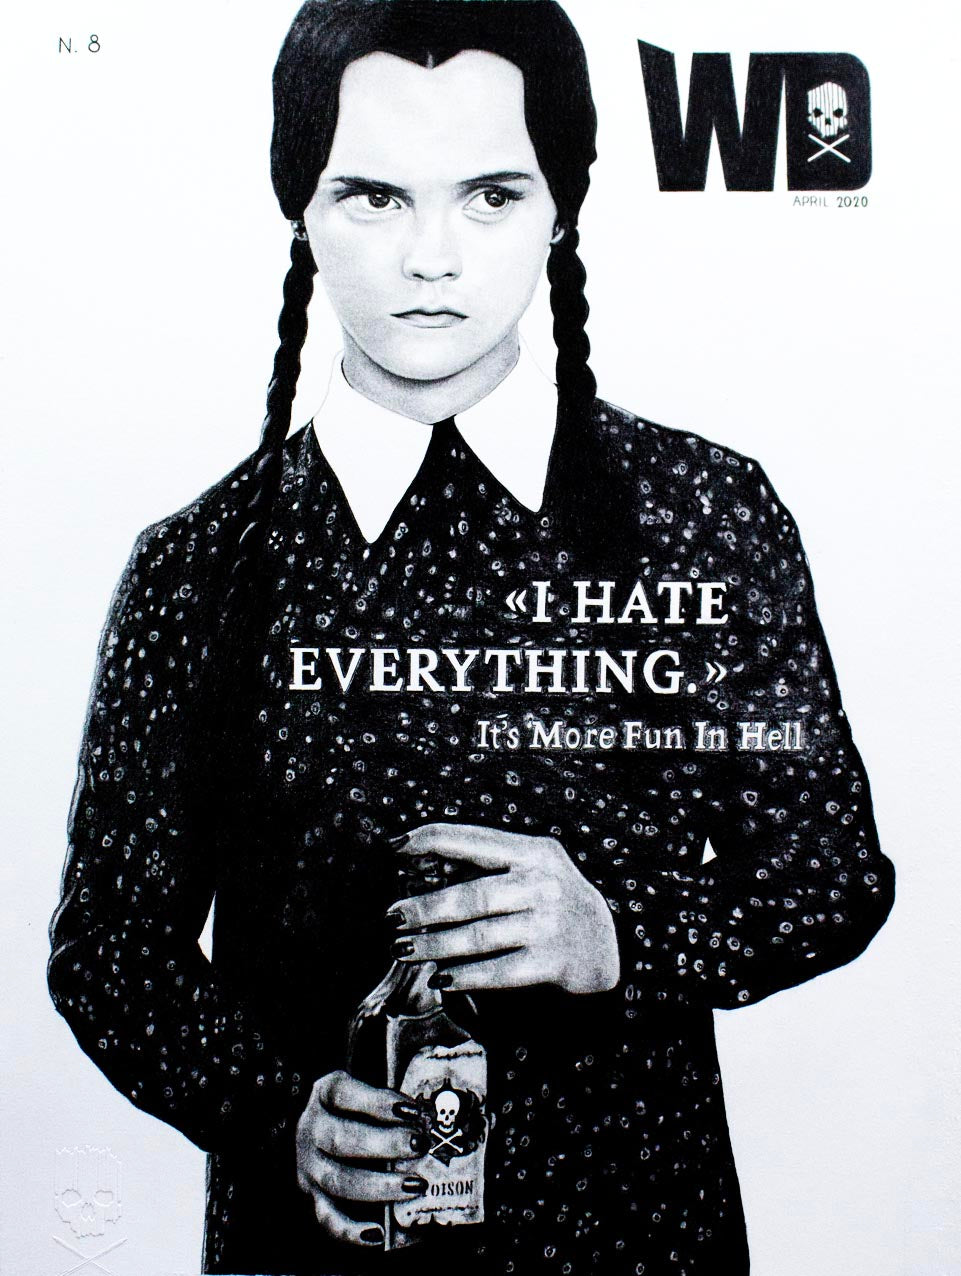 I Hate Everything Wayne Danza n°8 Acid Gallery